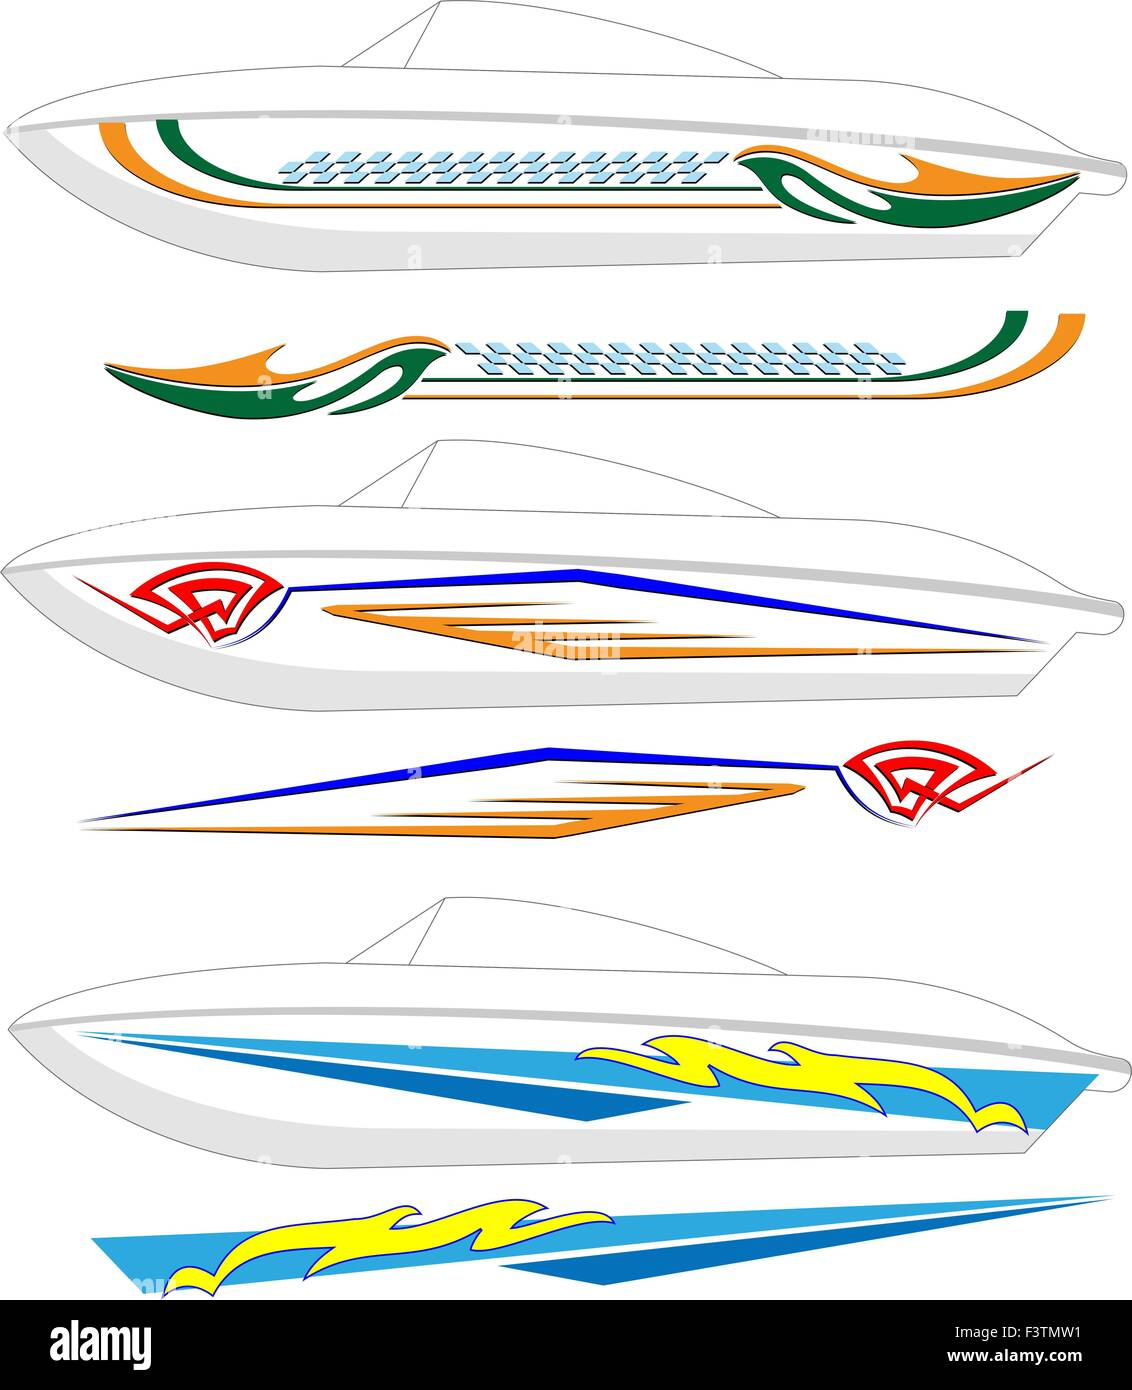 Boat graphics stripe vinyl ready vector art